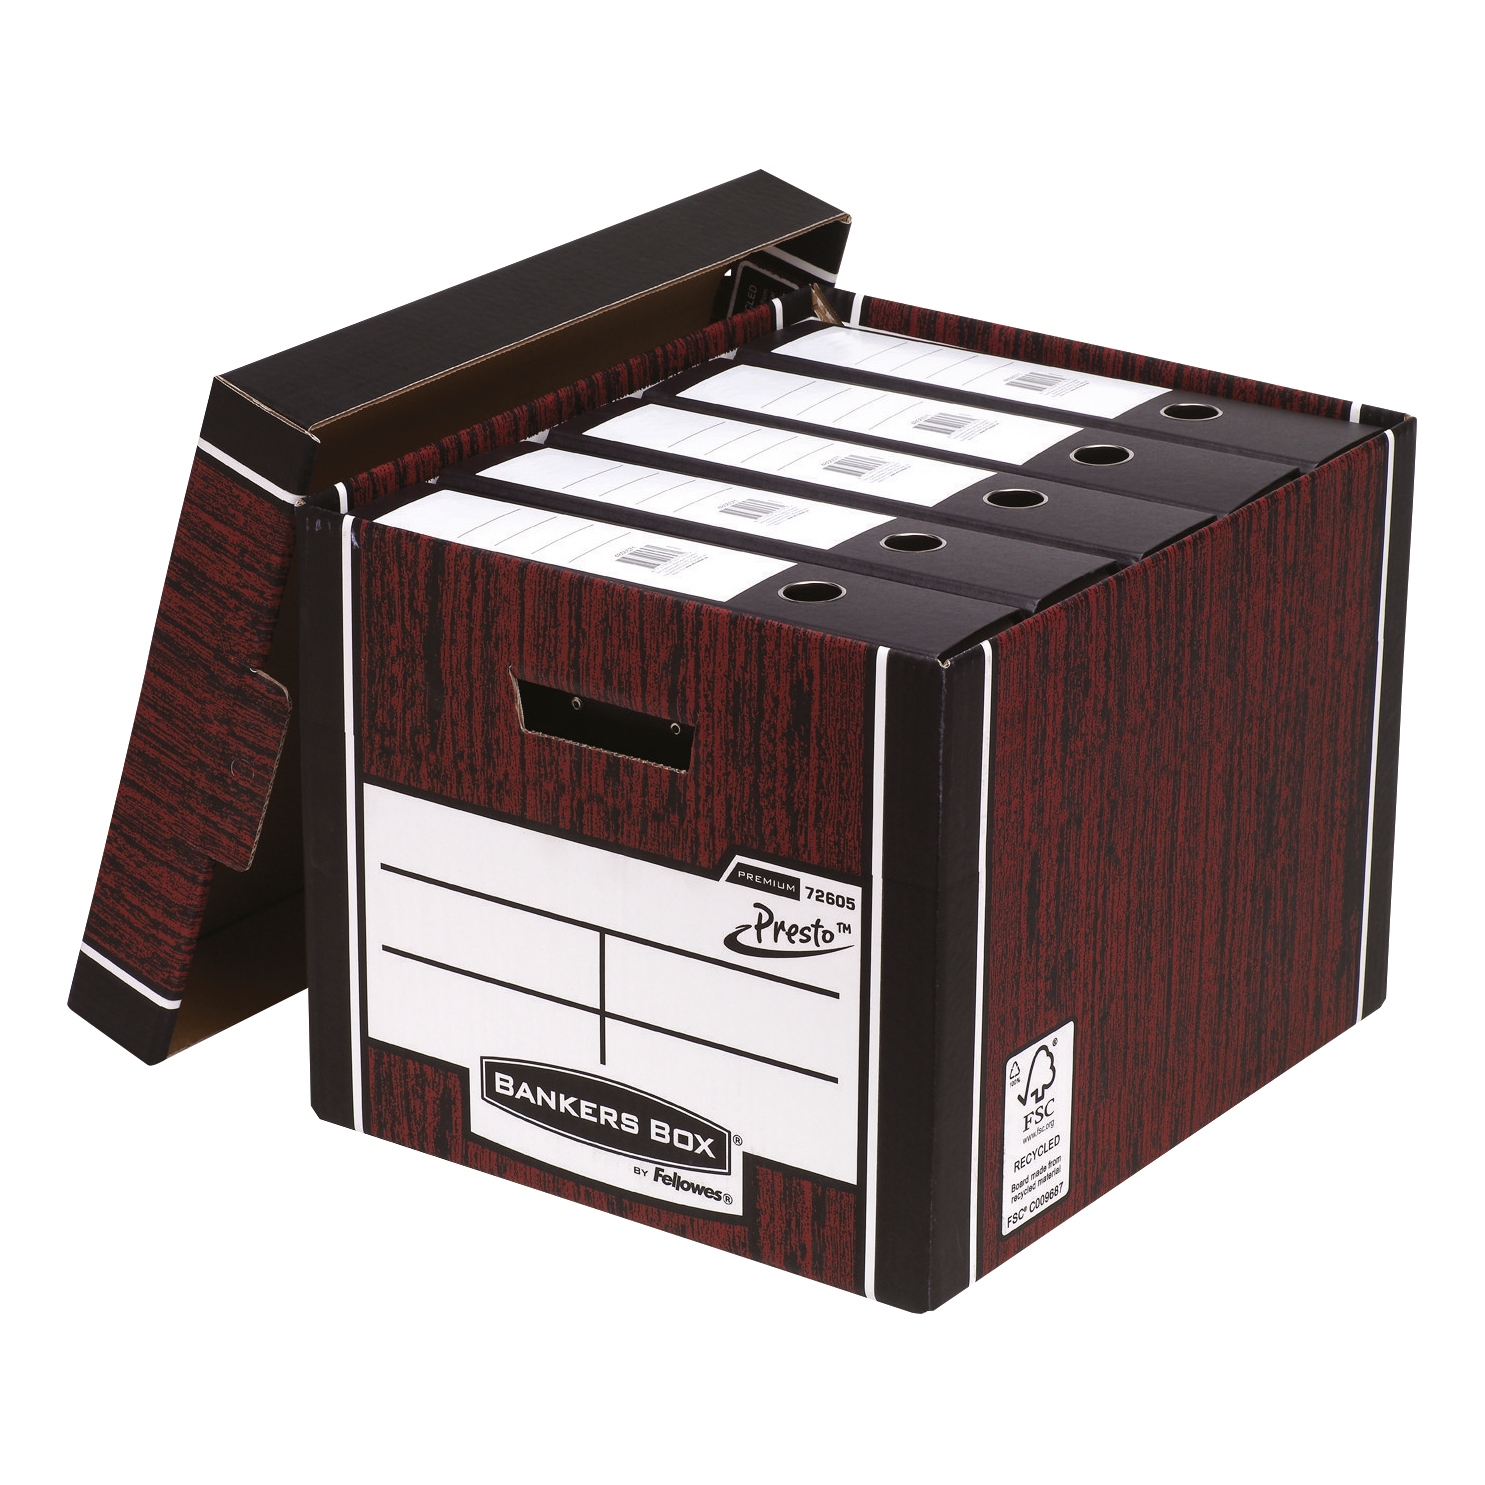 Storage Boxes Bankers Box Premium Storage Box (Presto) Tall Woodgrain FSC Ref 7260502 [Pack 10]